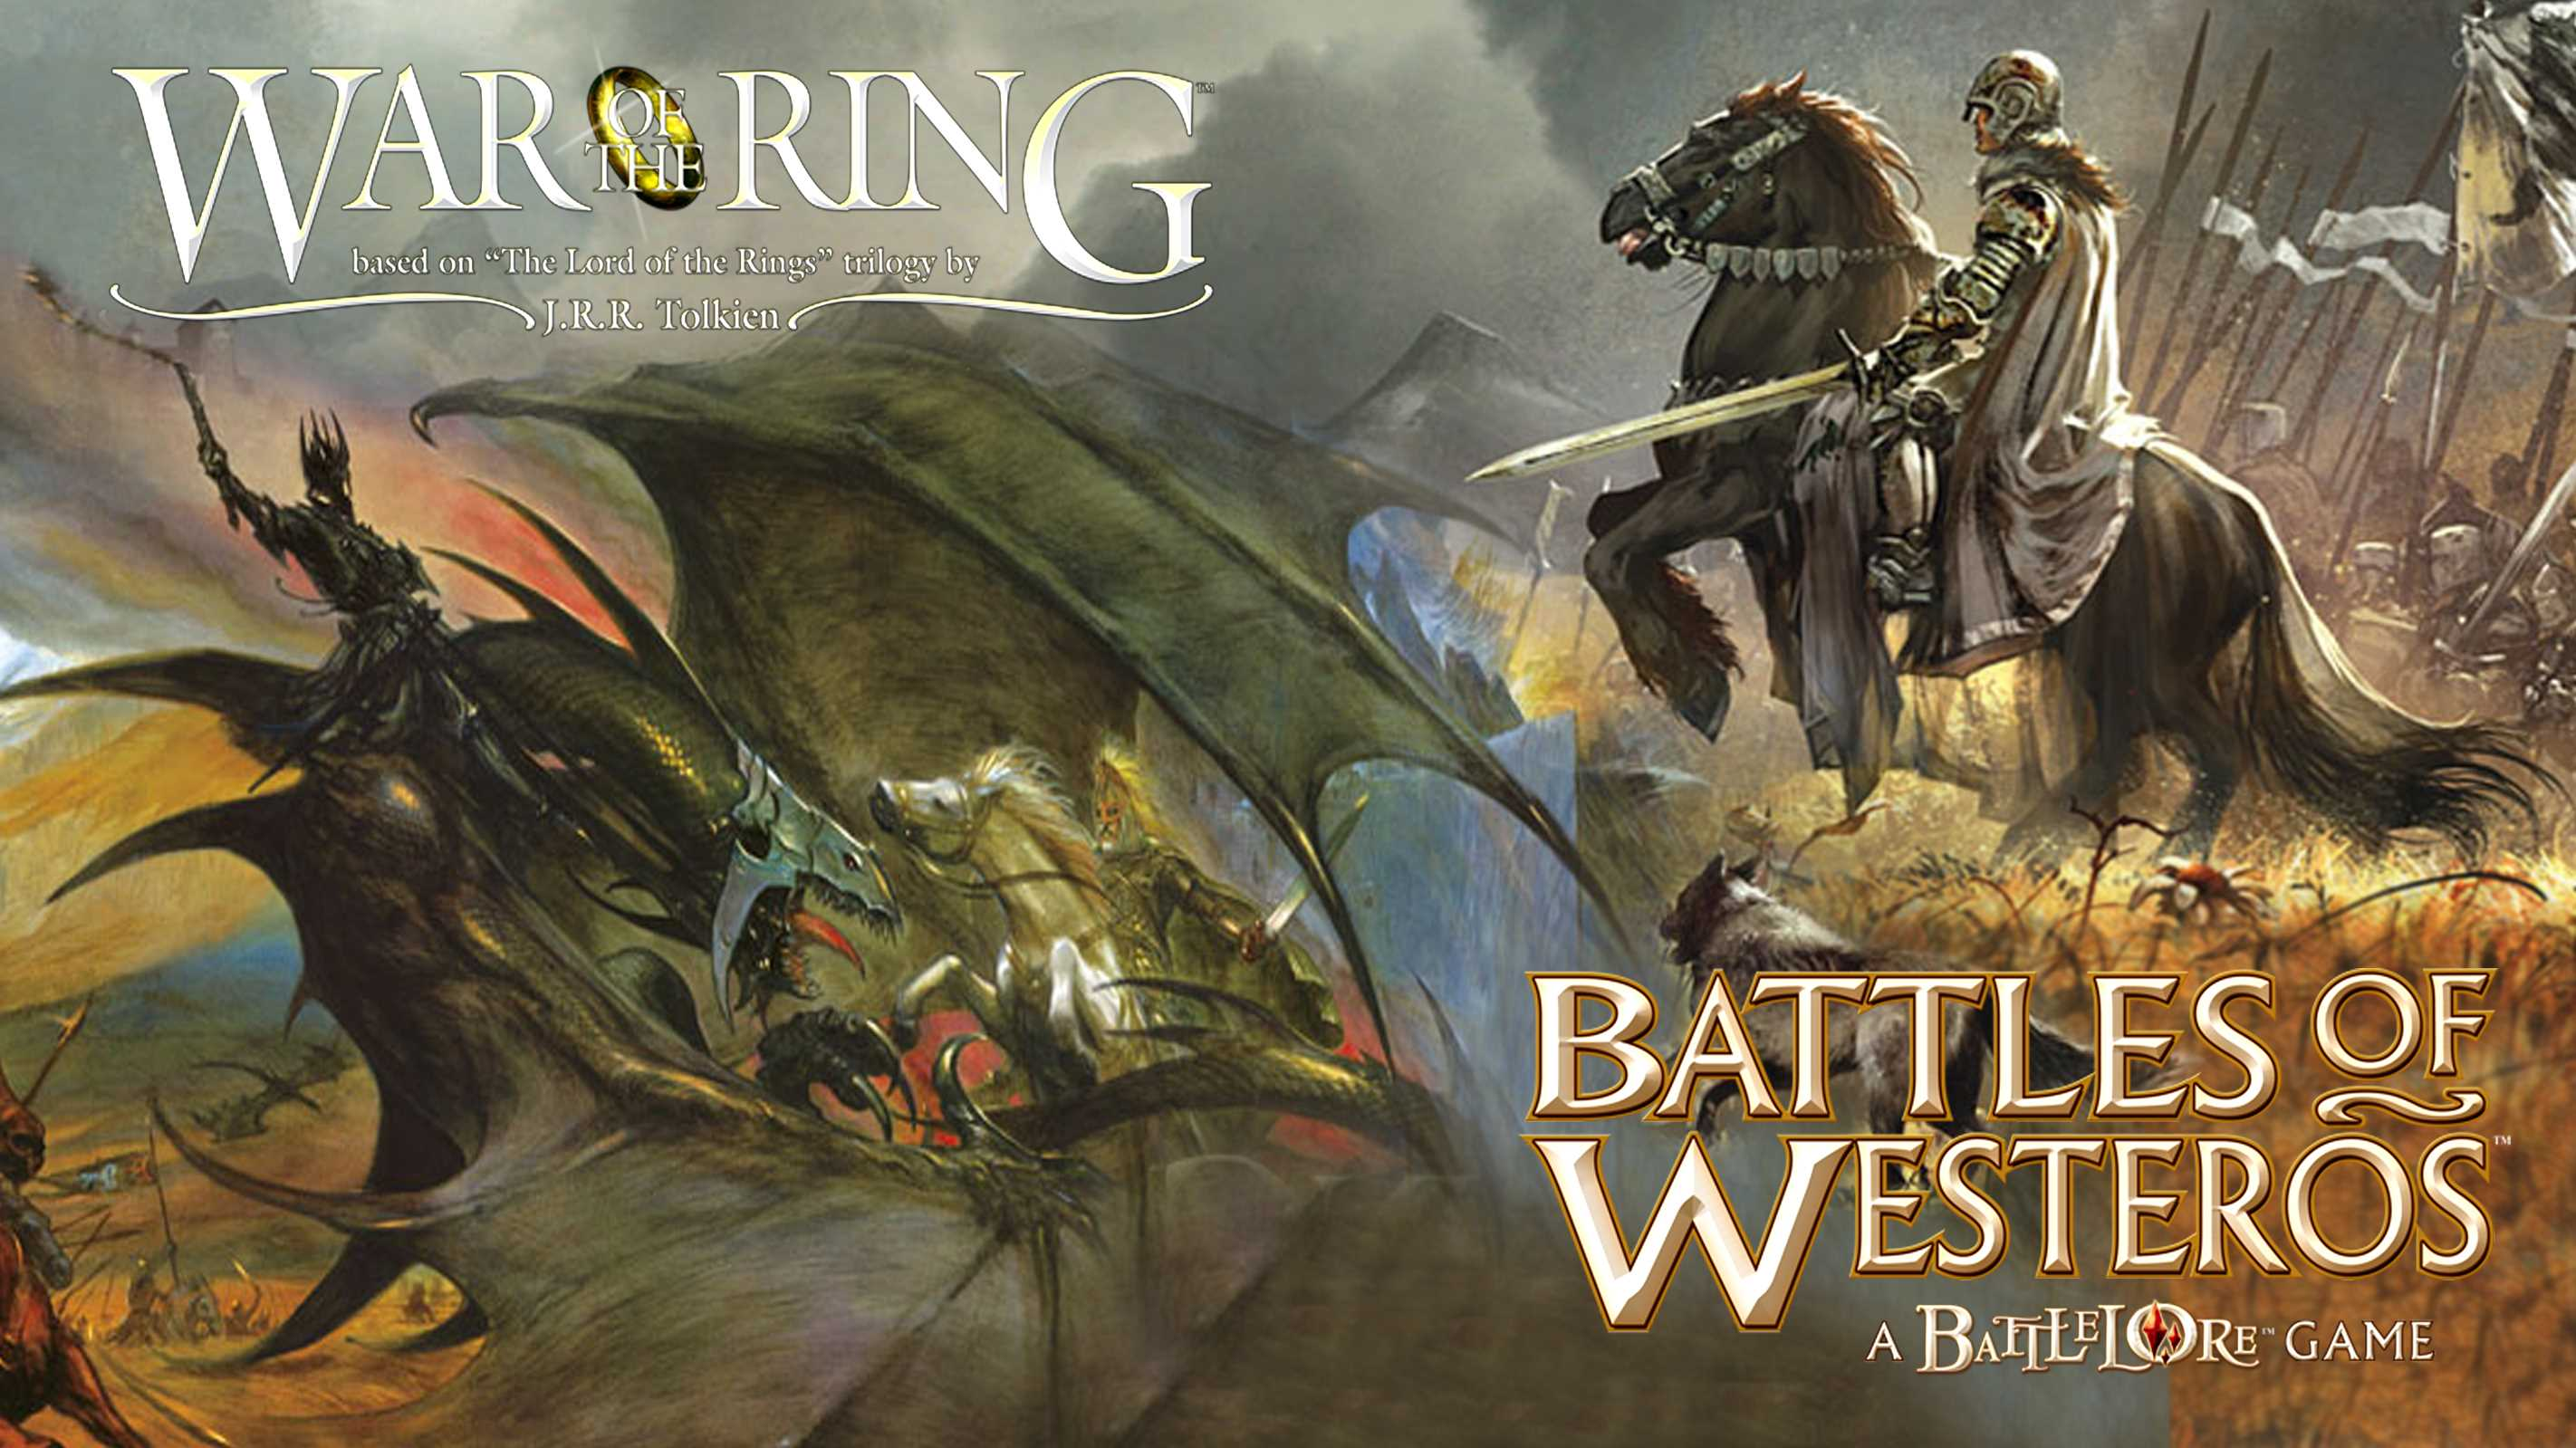 Fantasy Board Games War Of The Ring Vs Battles Of